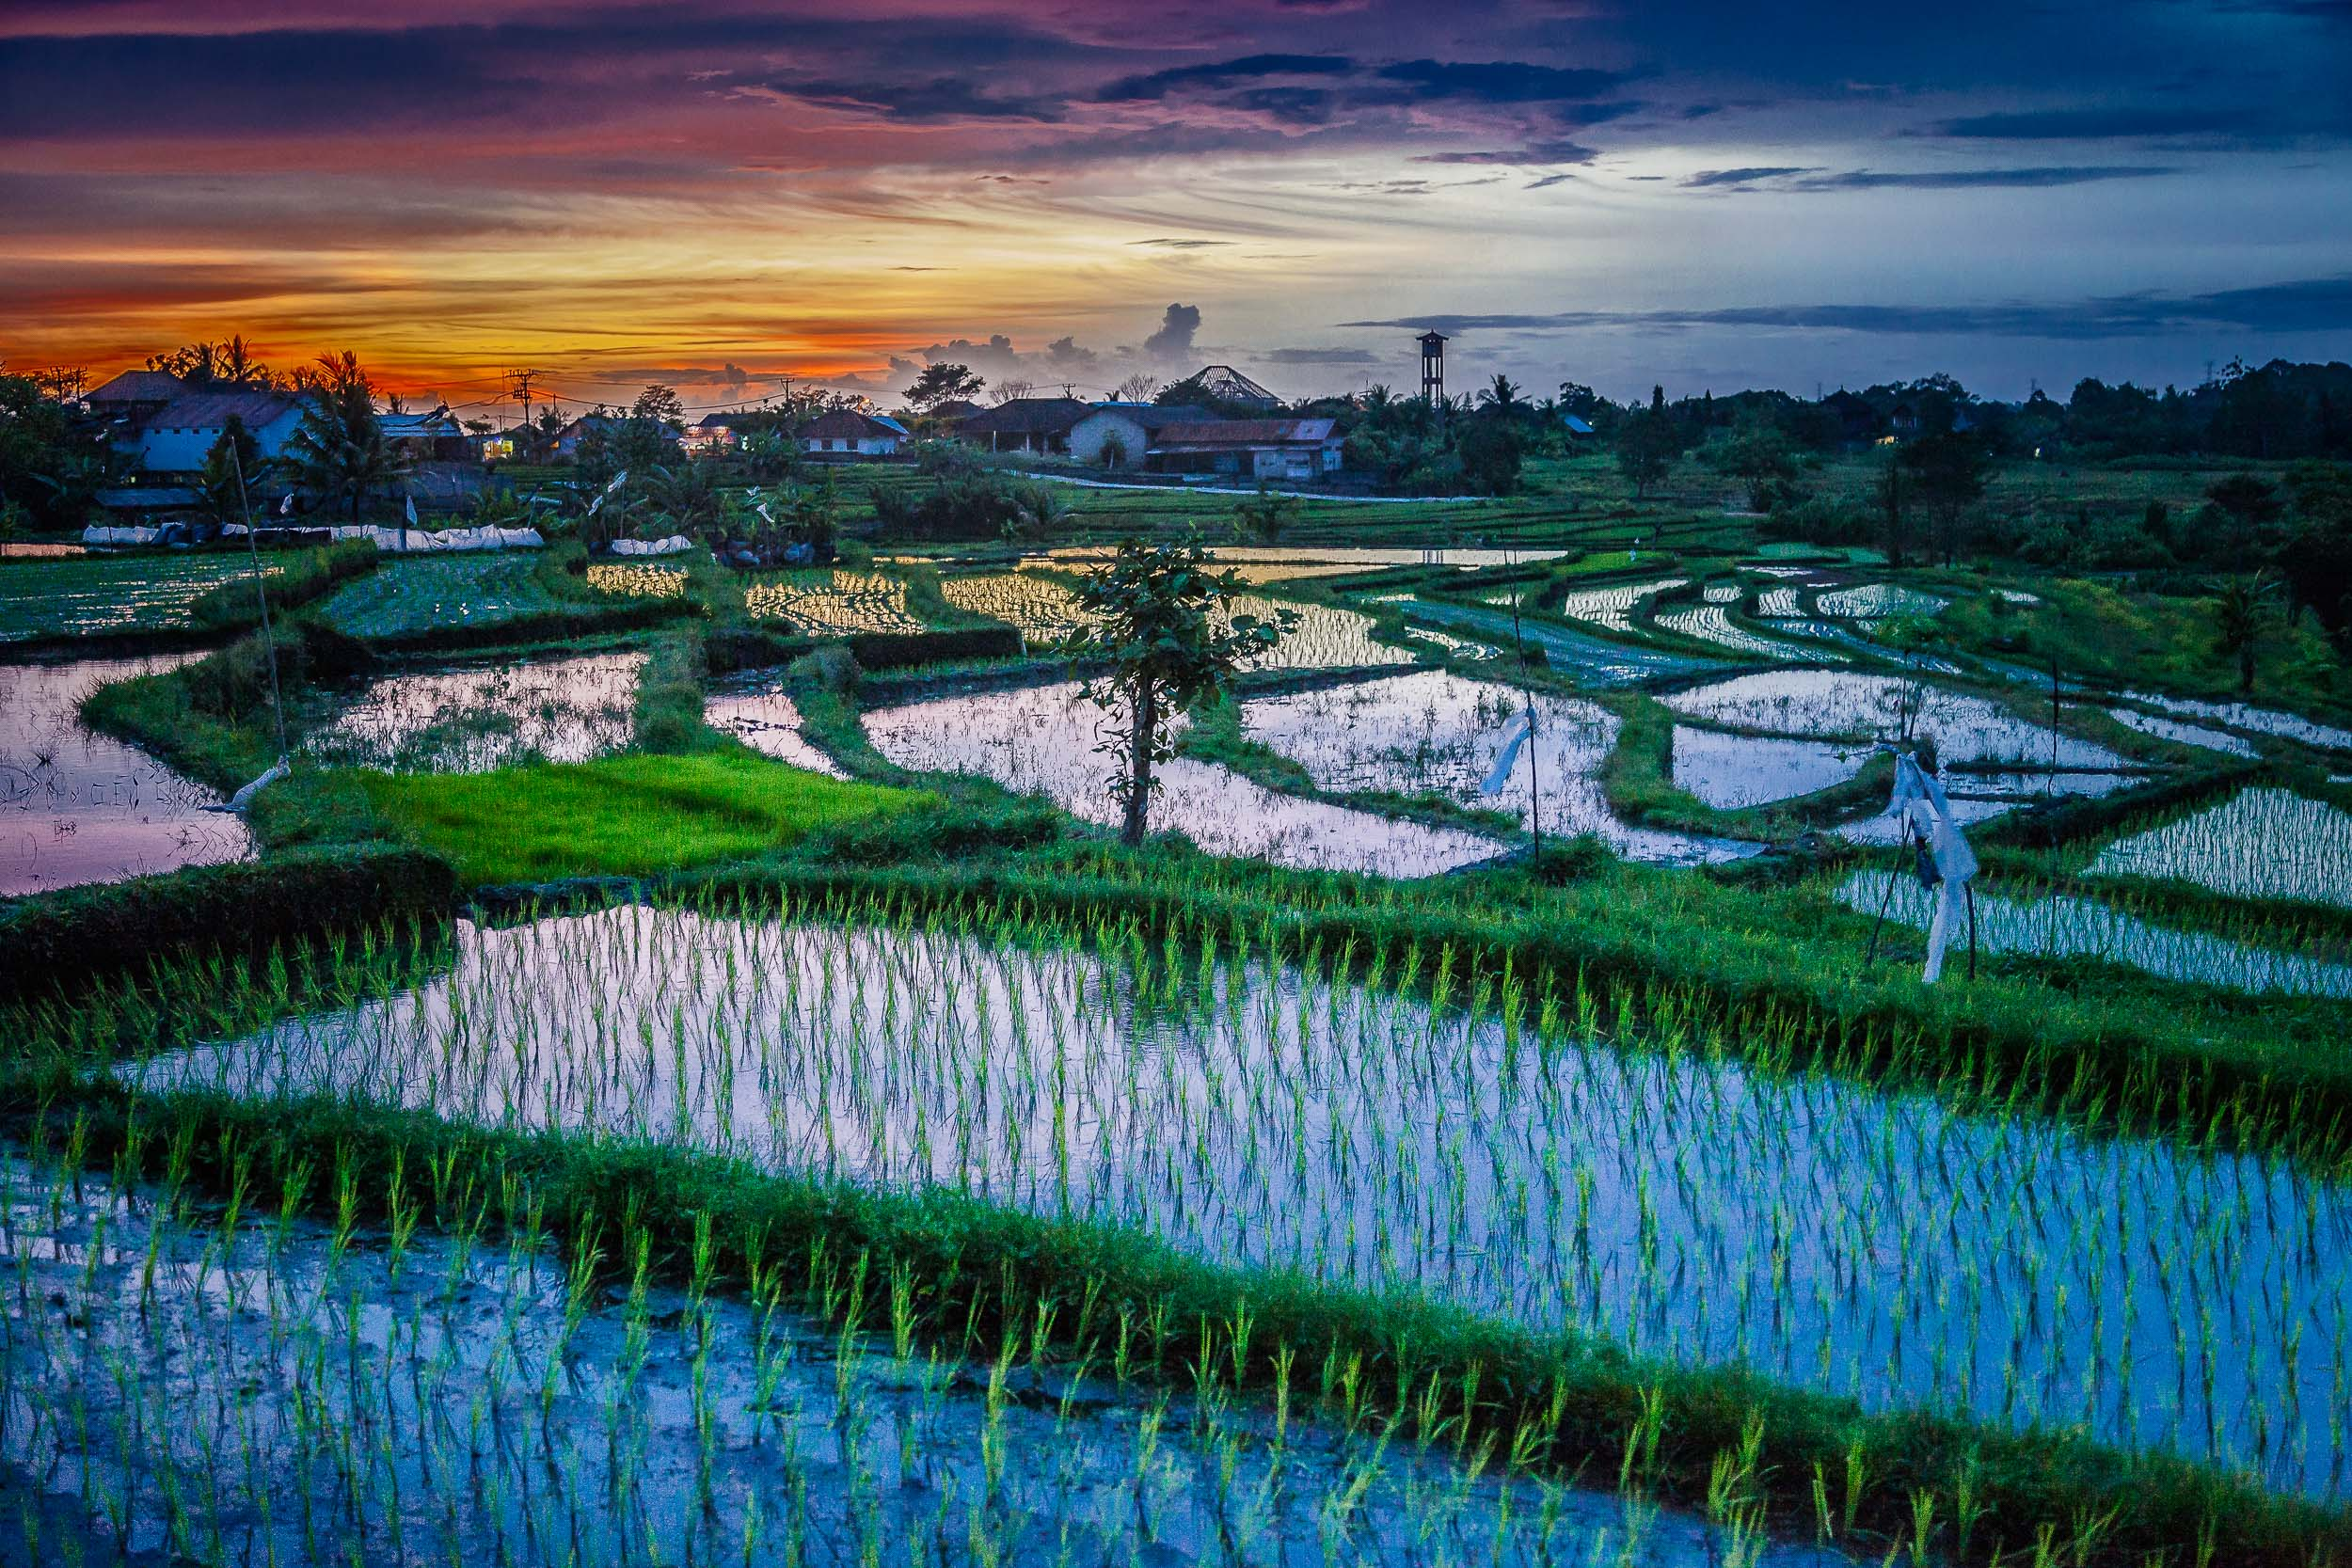 A glorious  sunset over rice fields  in rural  Bali, Indonesia .